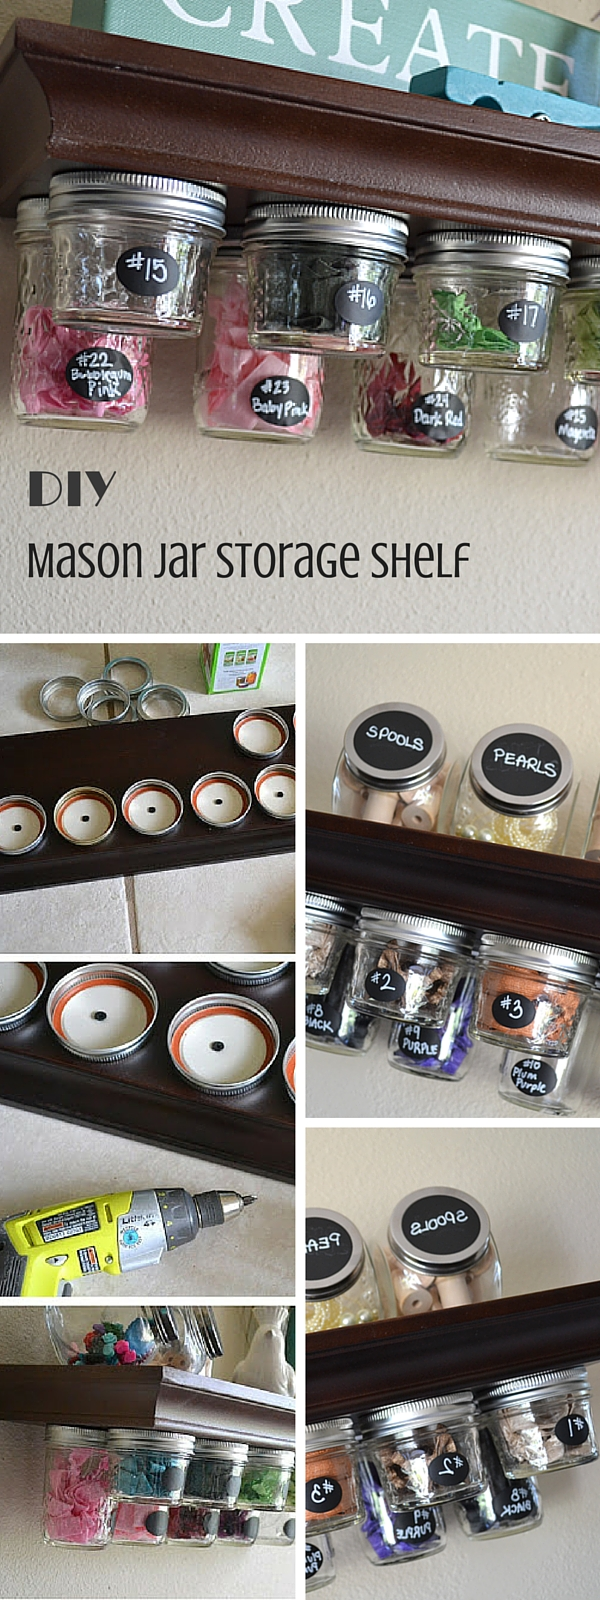 Check out the tutorial:  Mason Jar Storage Shelf